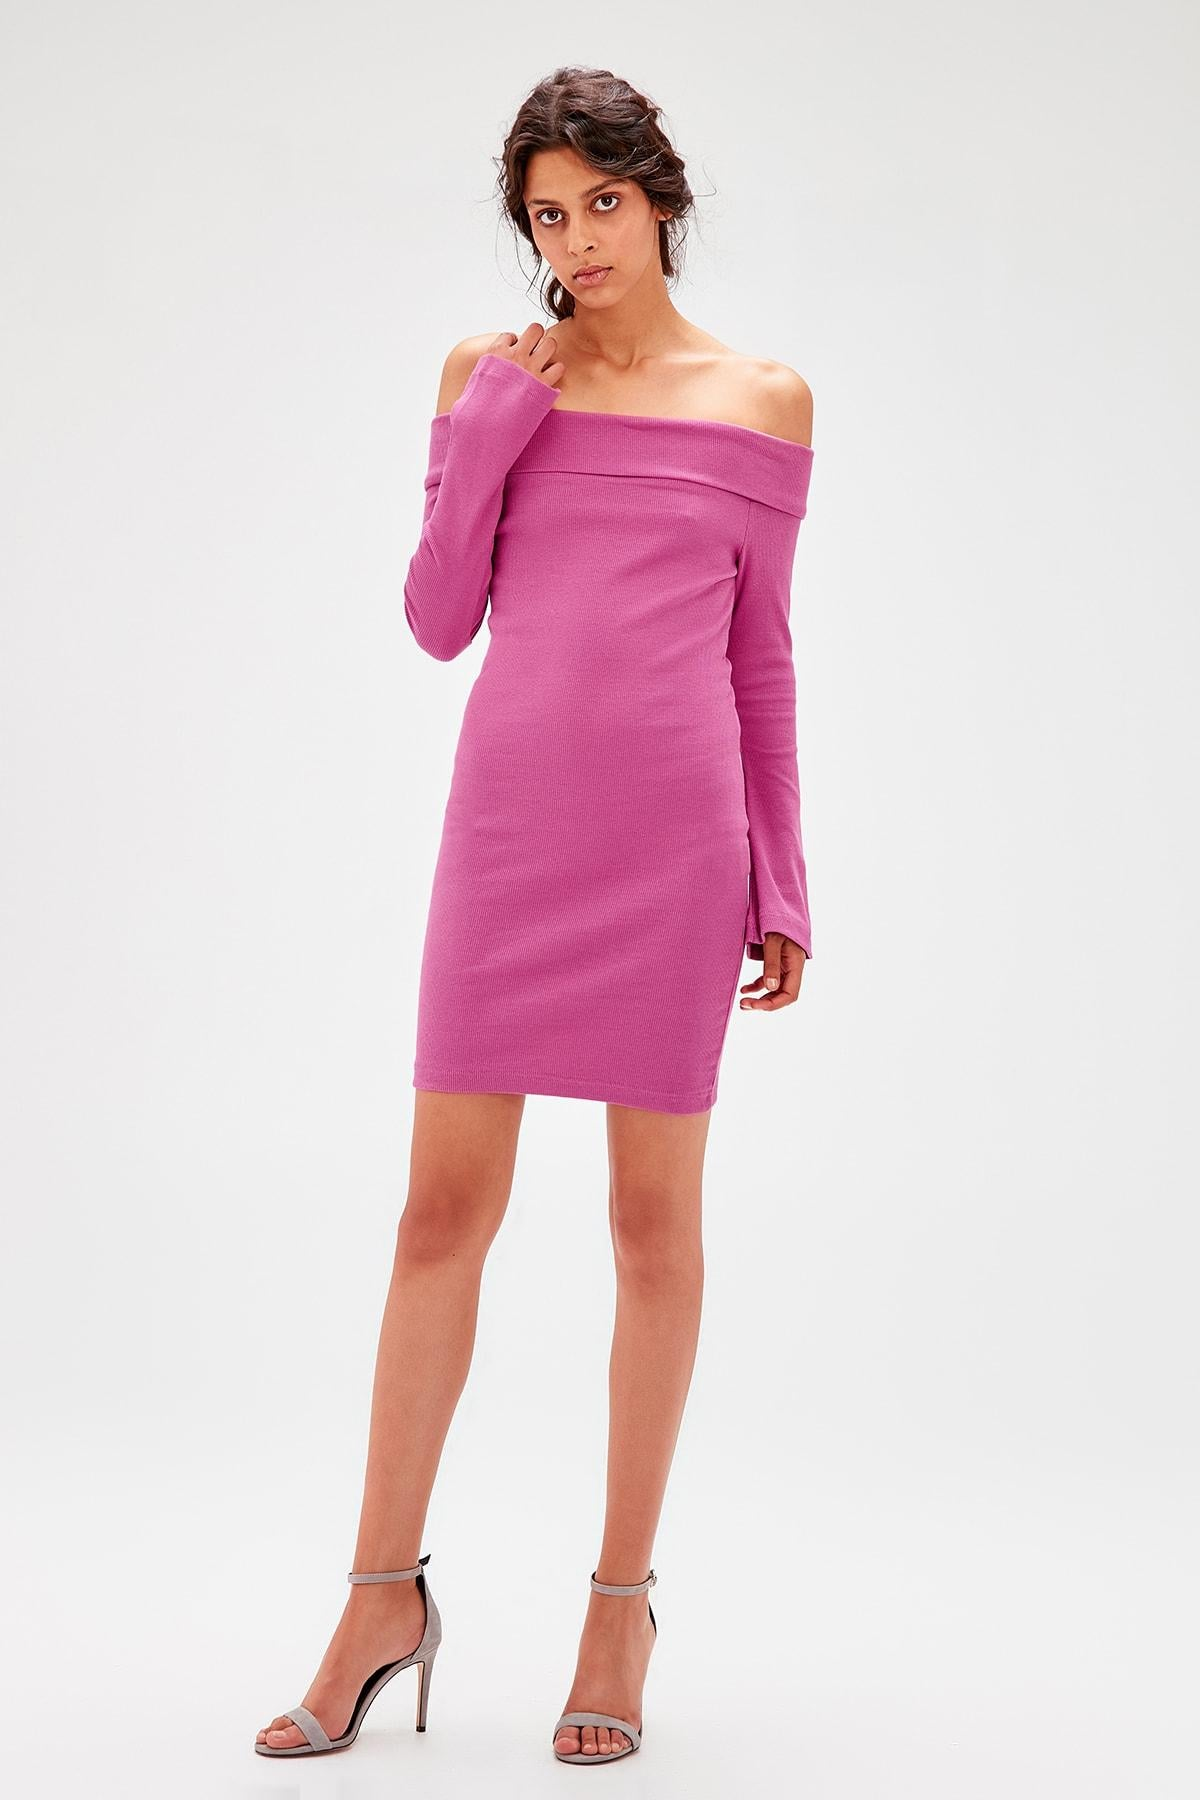 Pink Carmen Collar Knitted Dress - emuuz.com